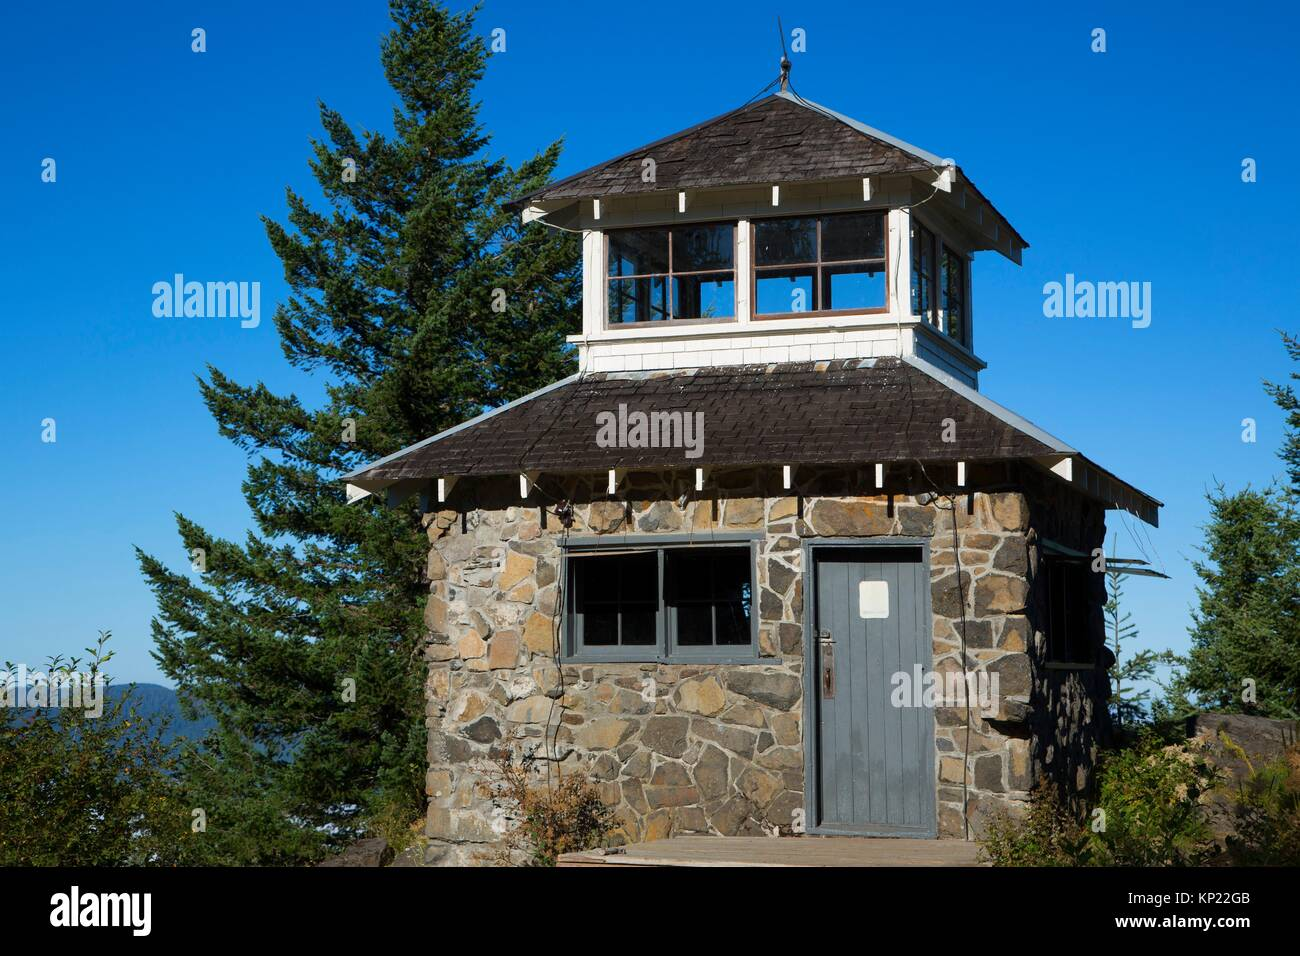 Pechuck Lookout, Salem District Bureau of Land Management, Oregon. - Stock Image